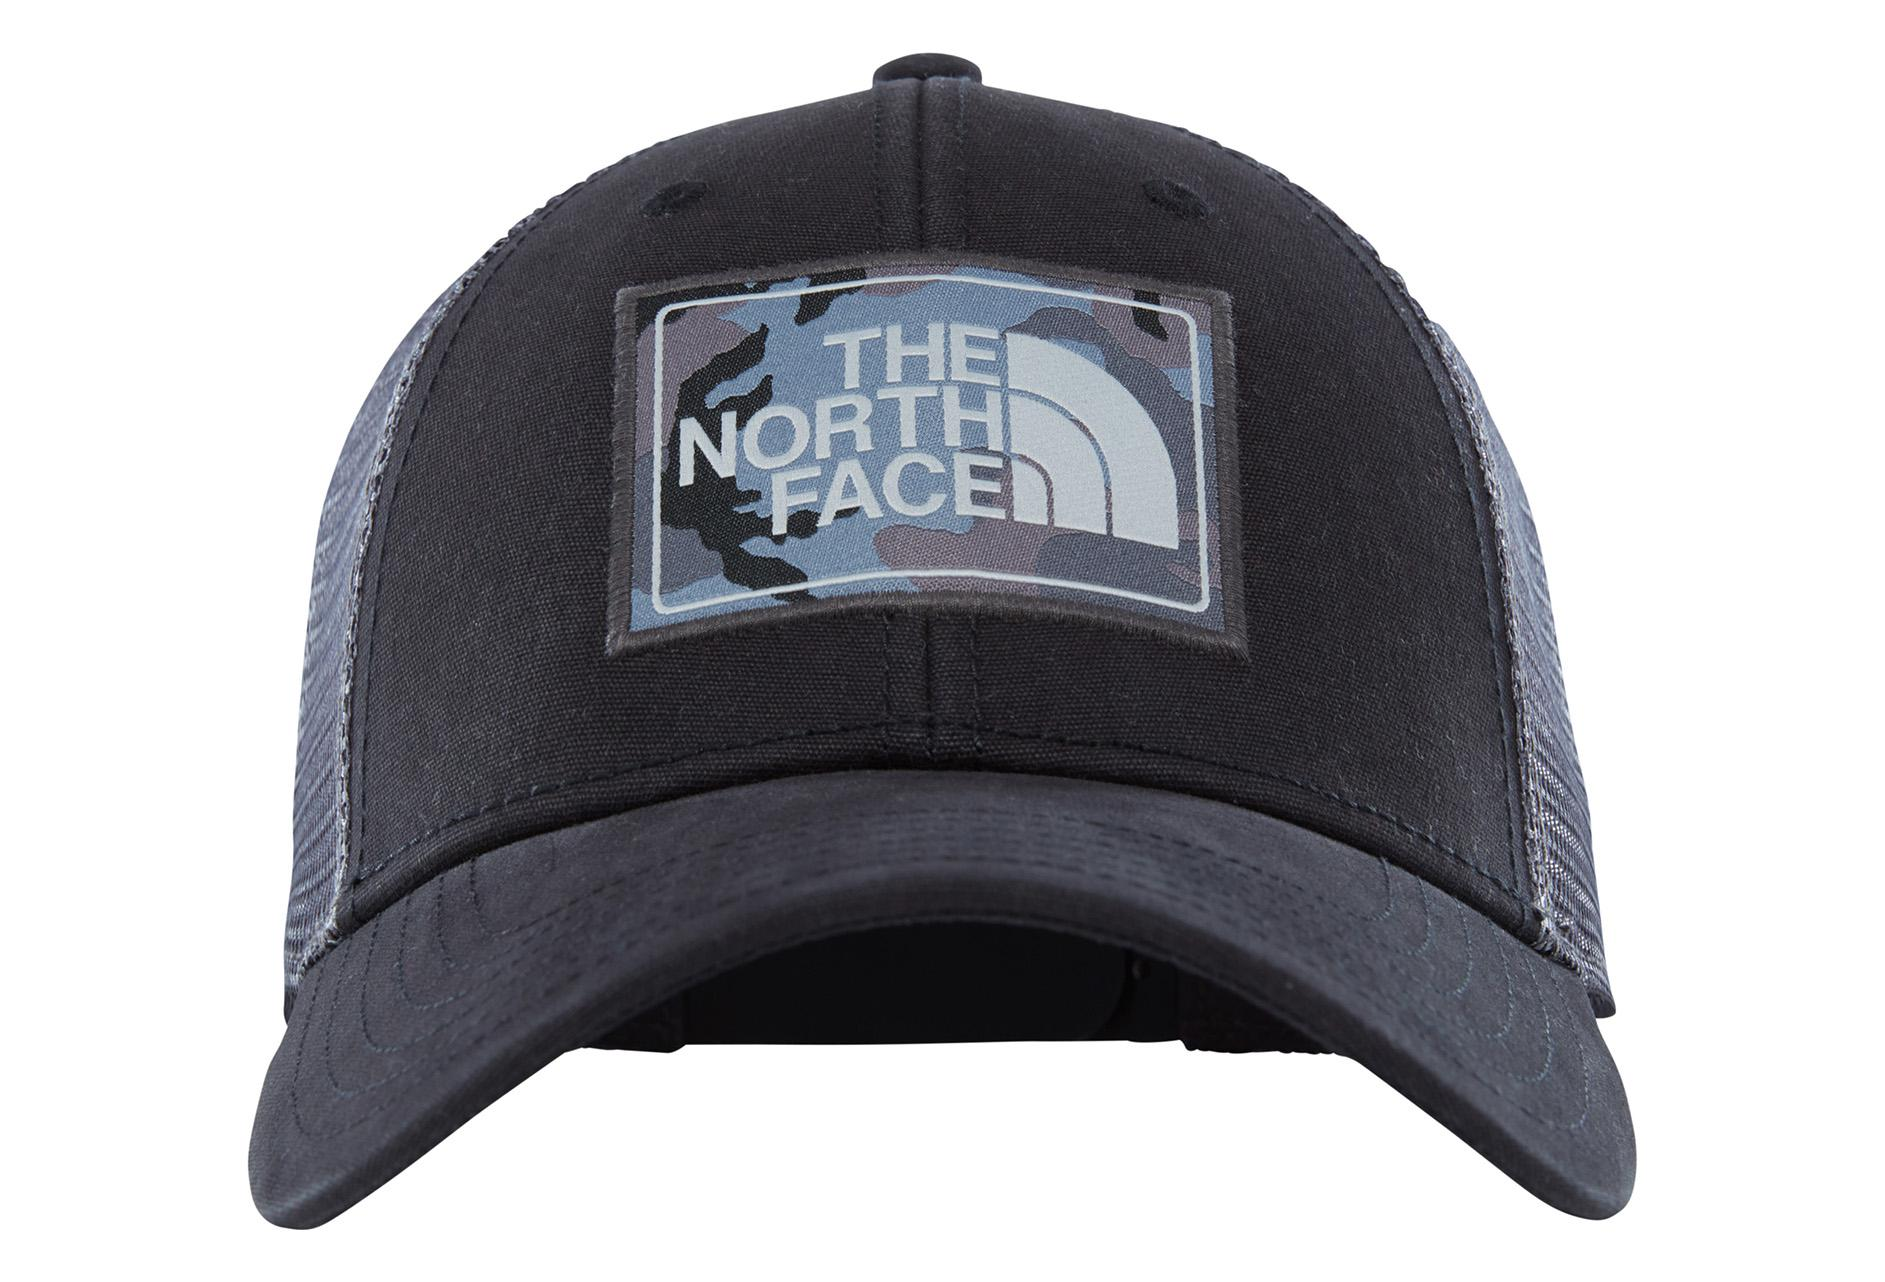 5a256a0ef2e63 Mudder Trucker Hat The North Face black grey Unisex